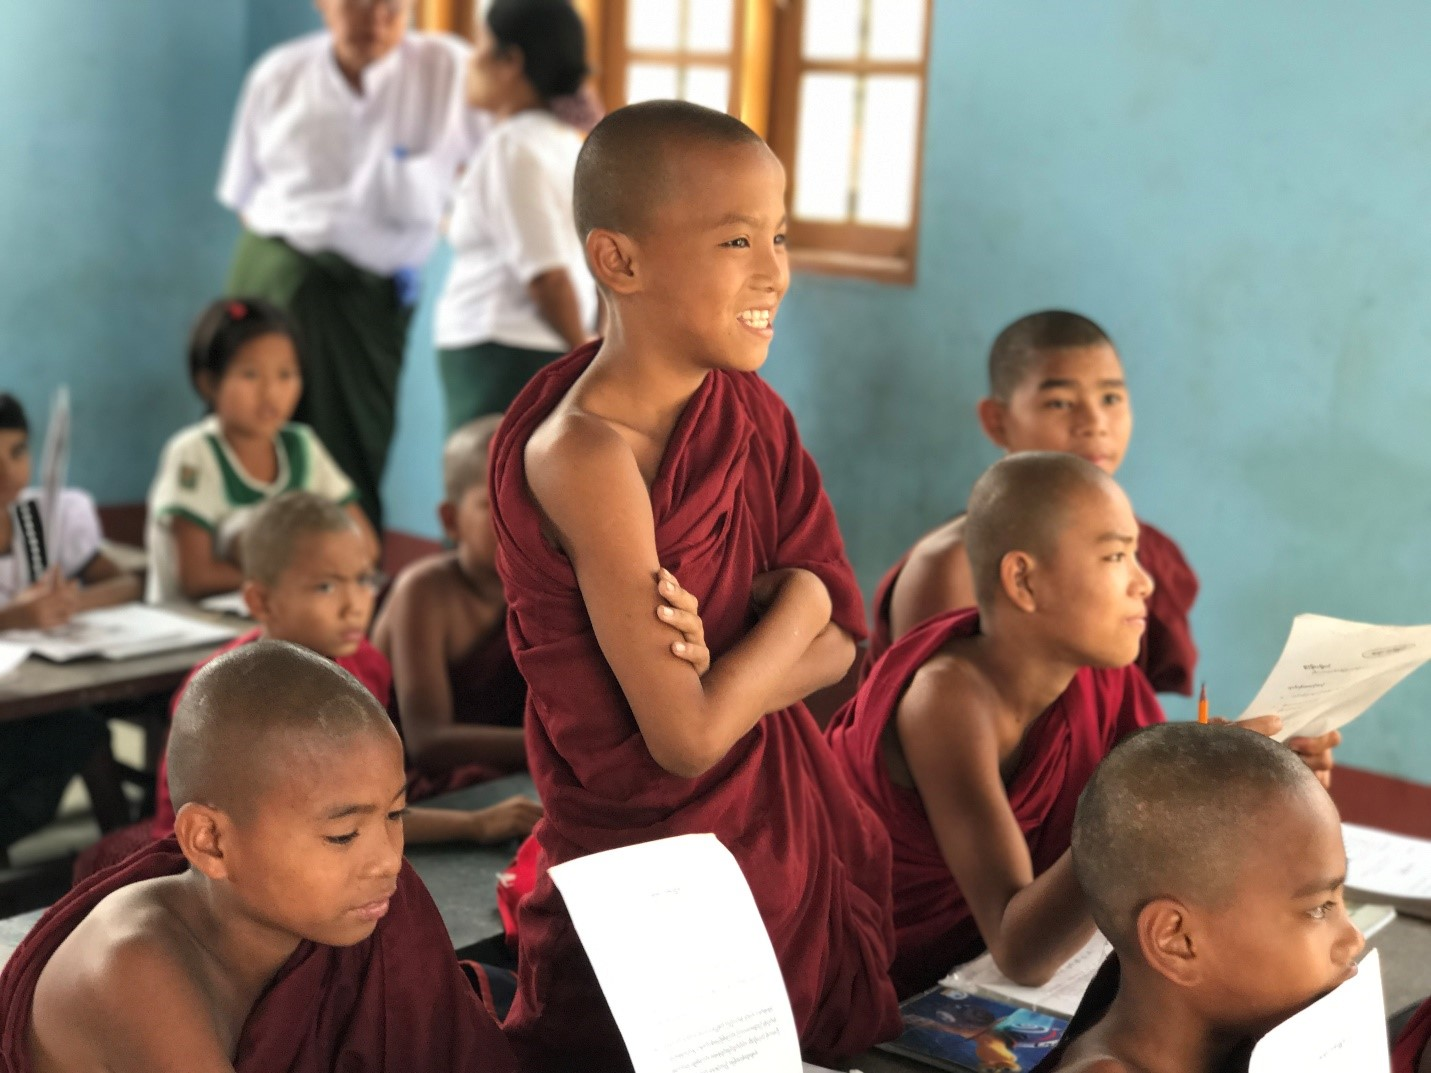 1704Myanmar-gender-challenge-6-Monks.jpg